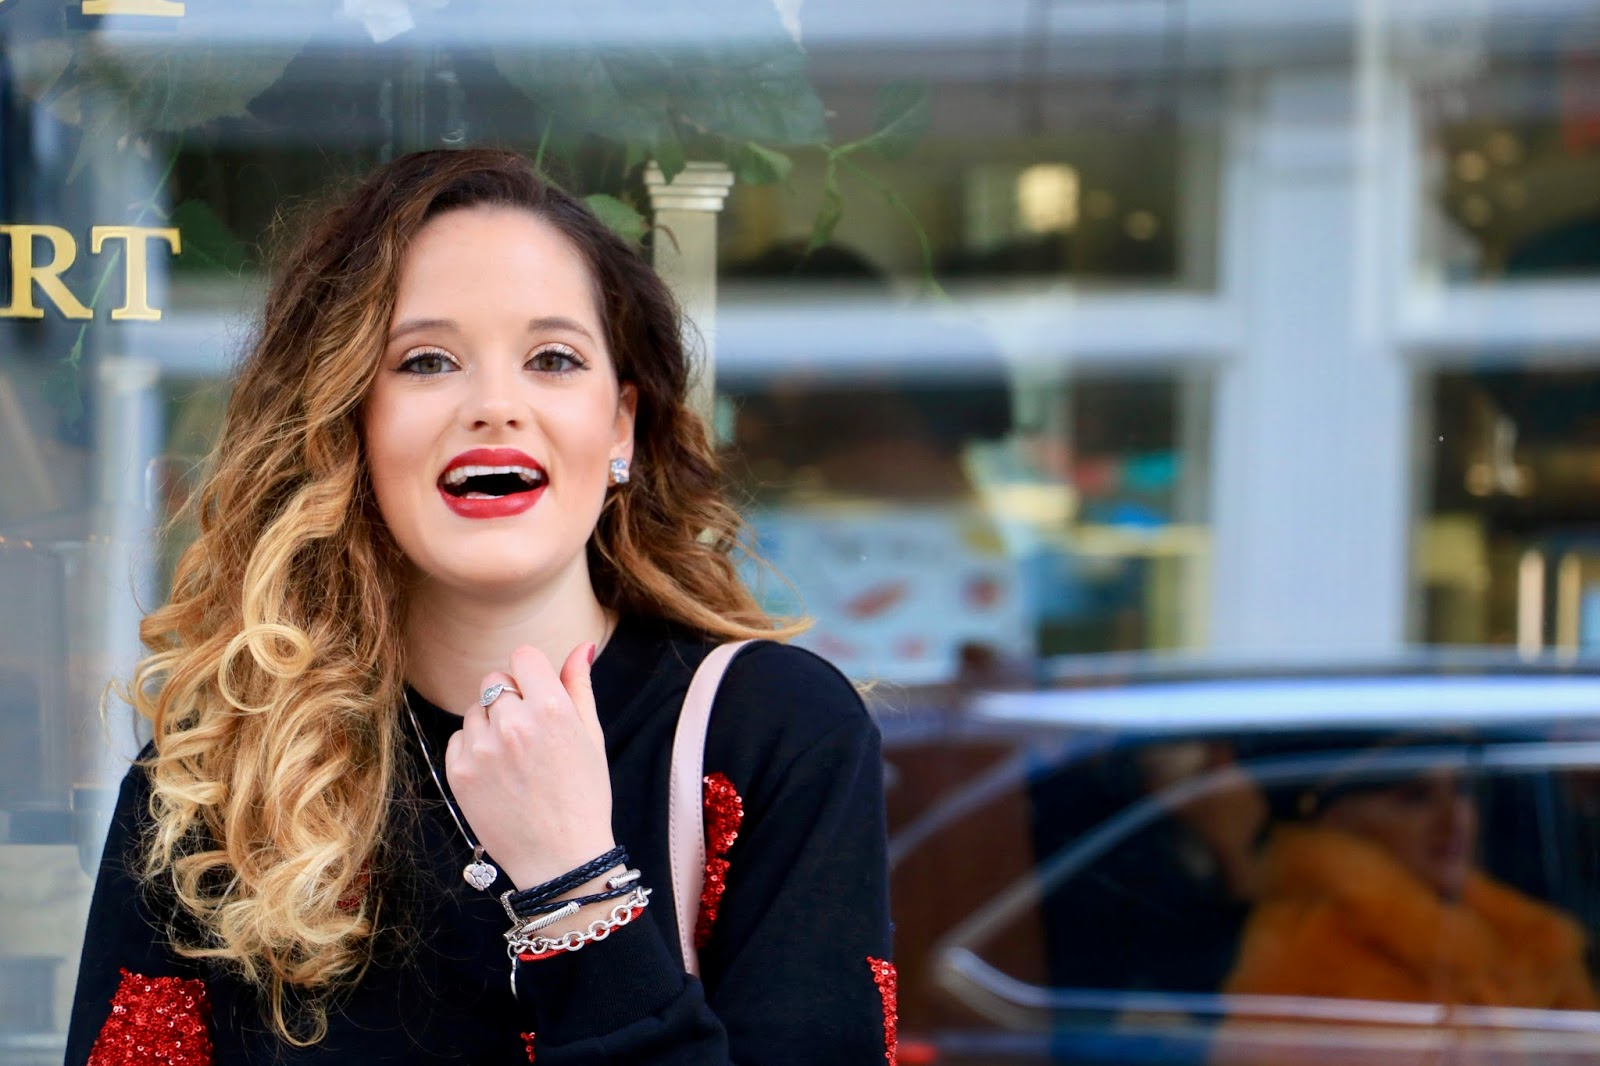 Nyc fashion blogger Kathleen Harper's Valentine's Day outfit